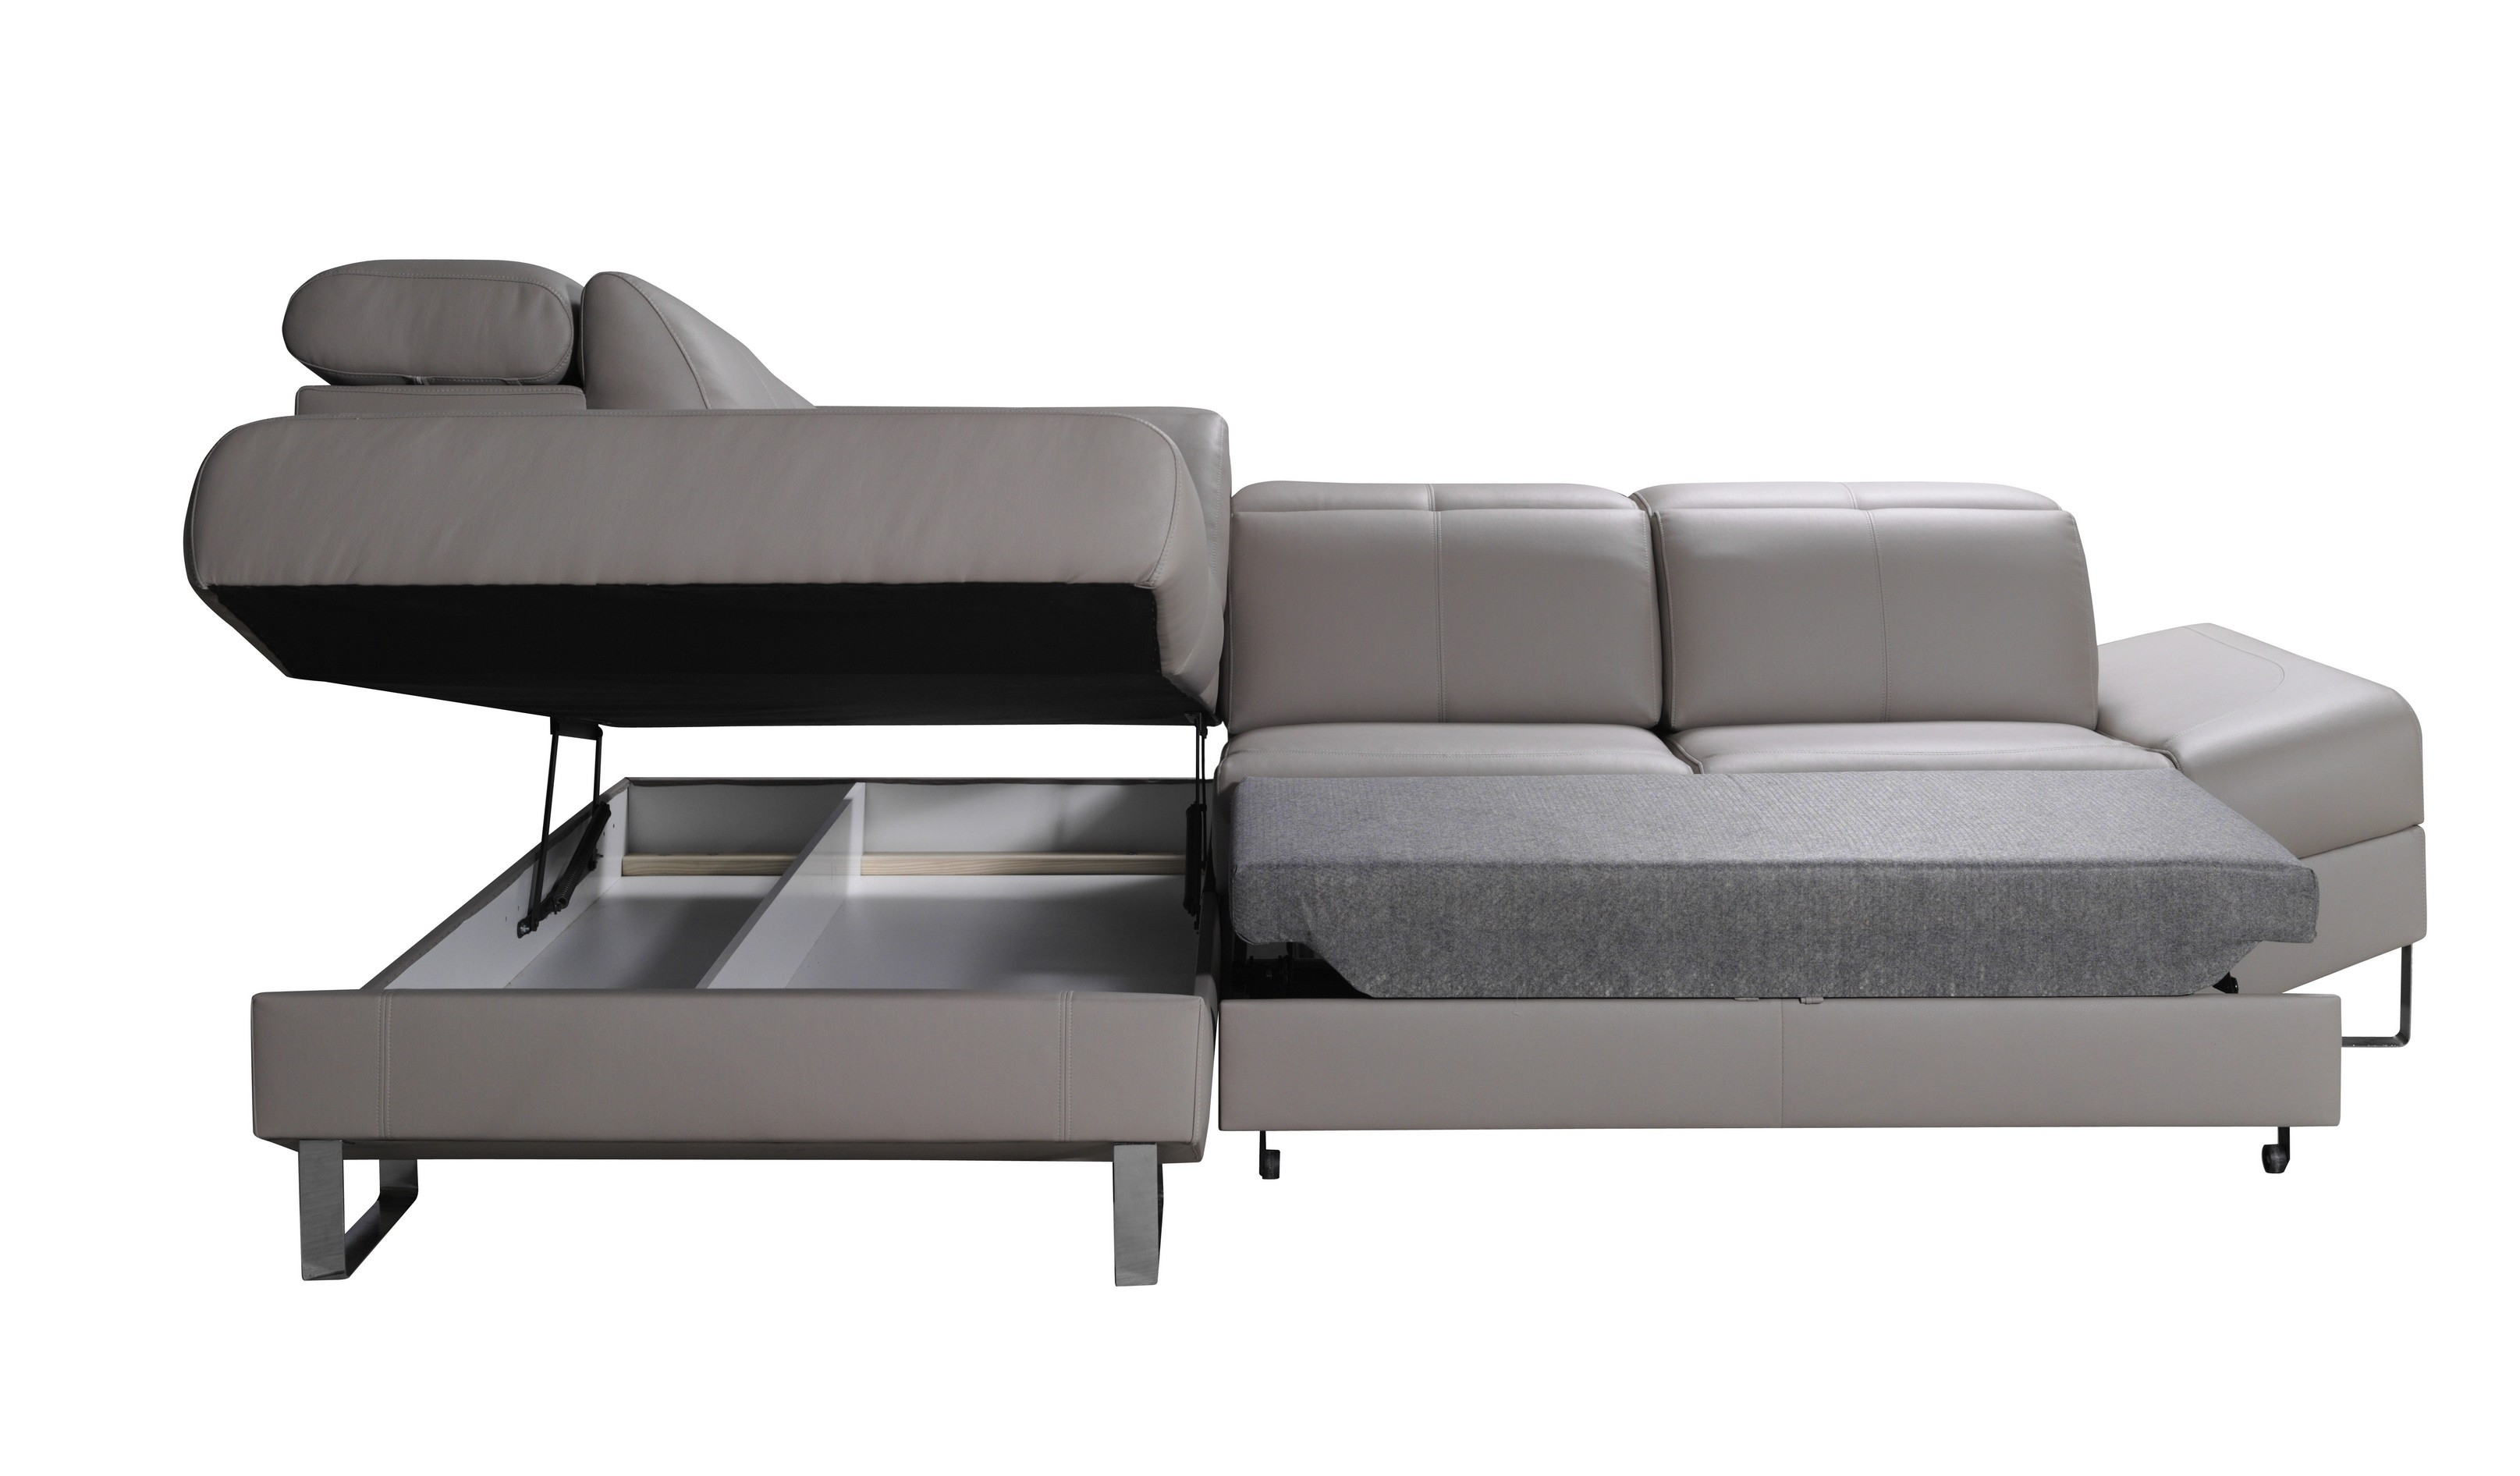 Best Sofa Sectional Sleeper Cool Home Design Inspiration With Regarding Cool Sleeper Sofas (Image 5 of 15)